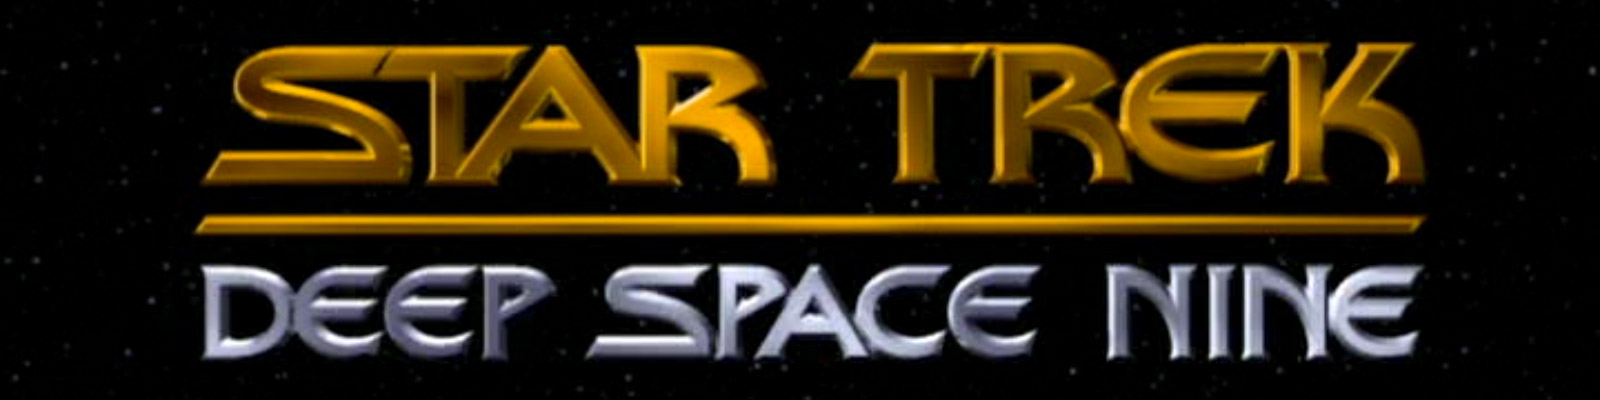 ™ & © 2016 CBS Studios Inc. – The Star Trek: Deep Space Nine logo as seen in the title sequences of the Star Trek: Deep Space Nine television series.